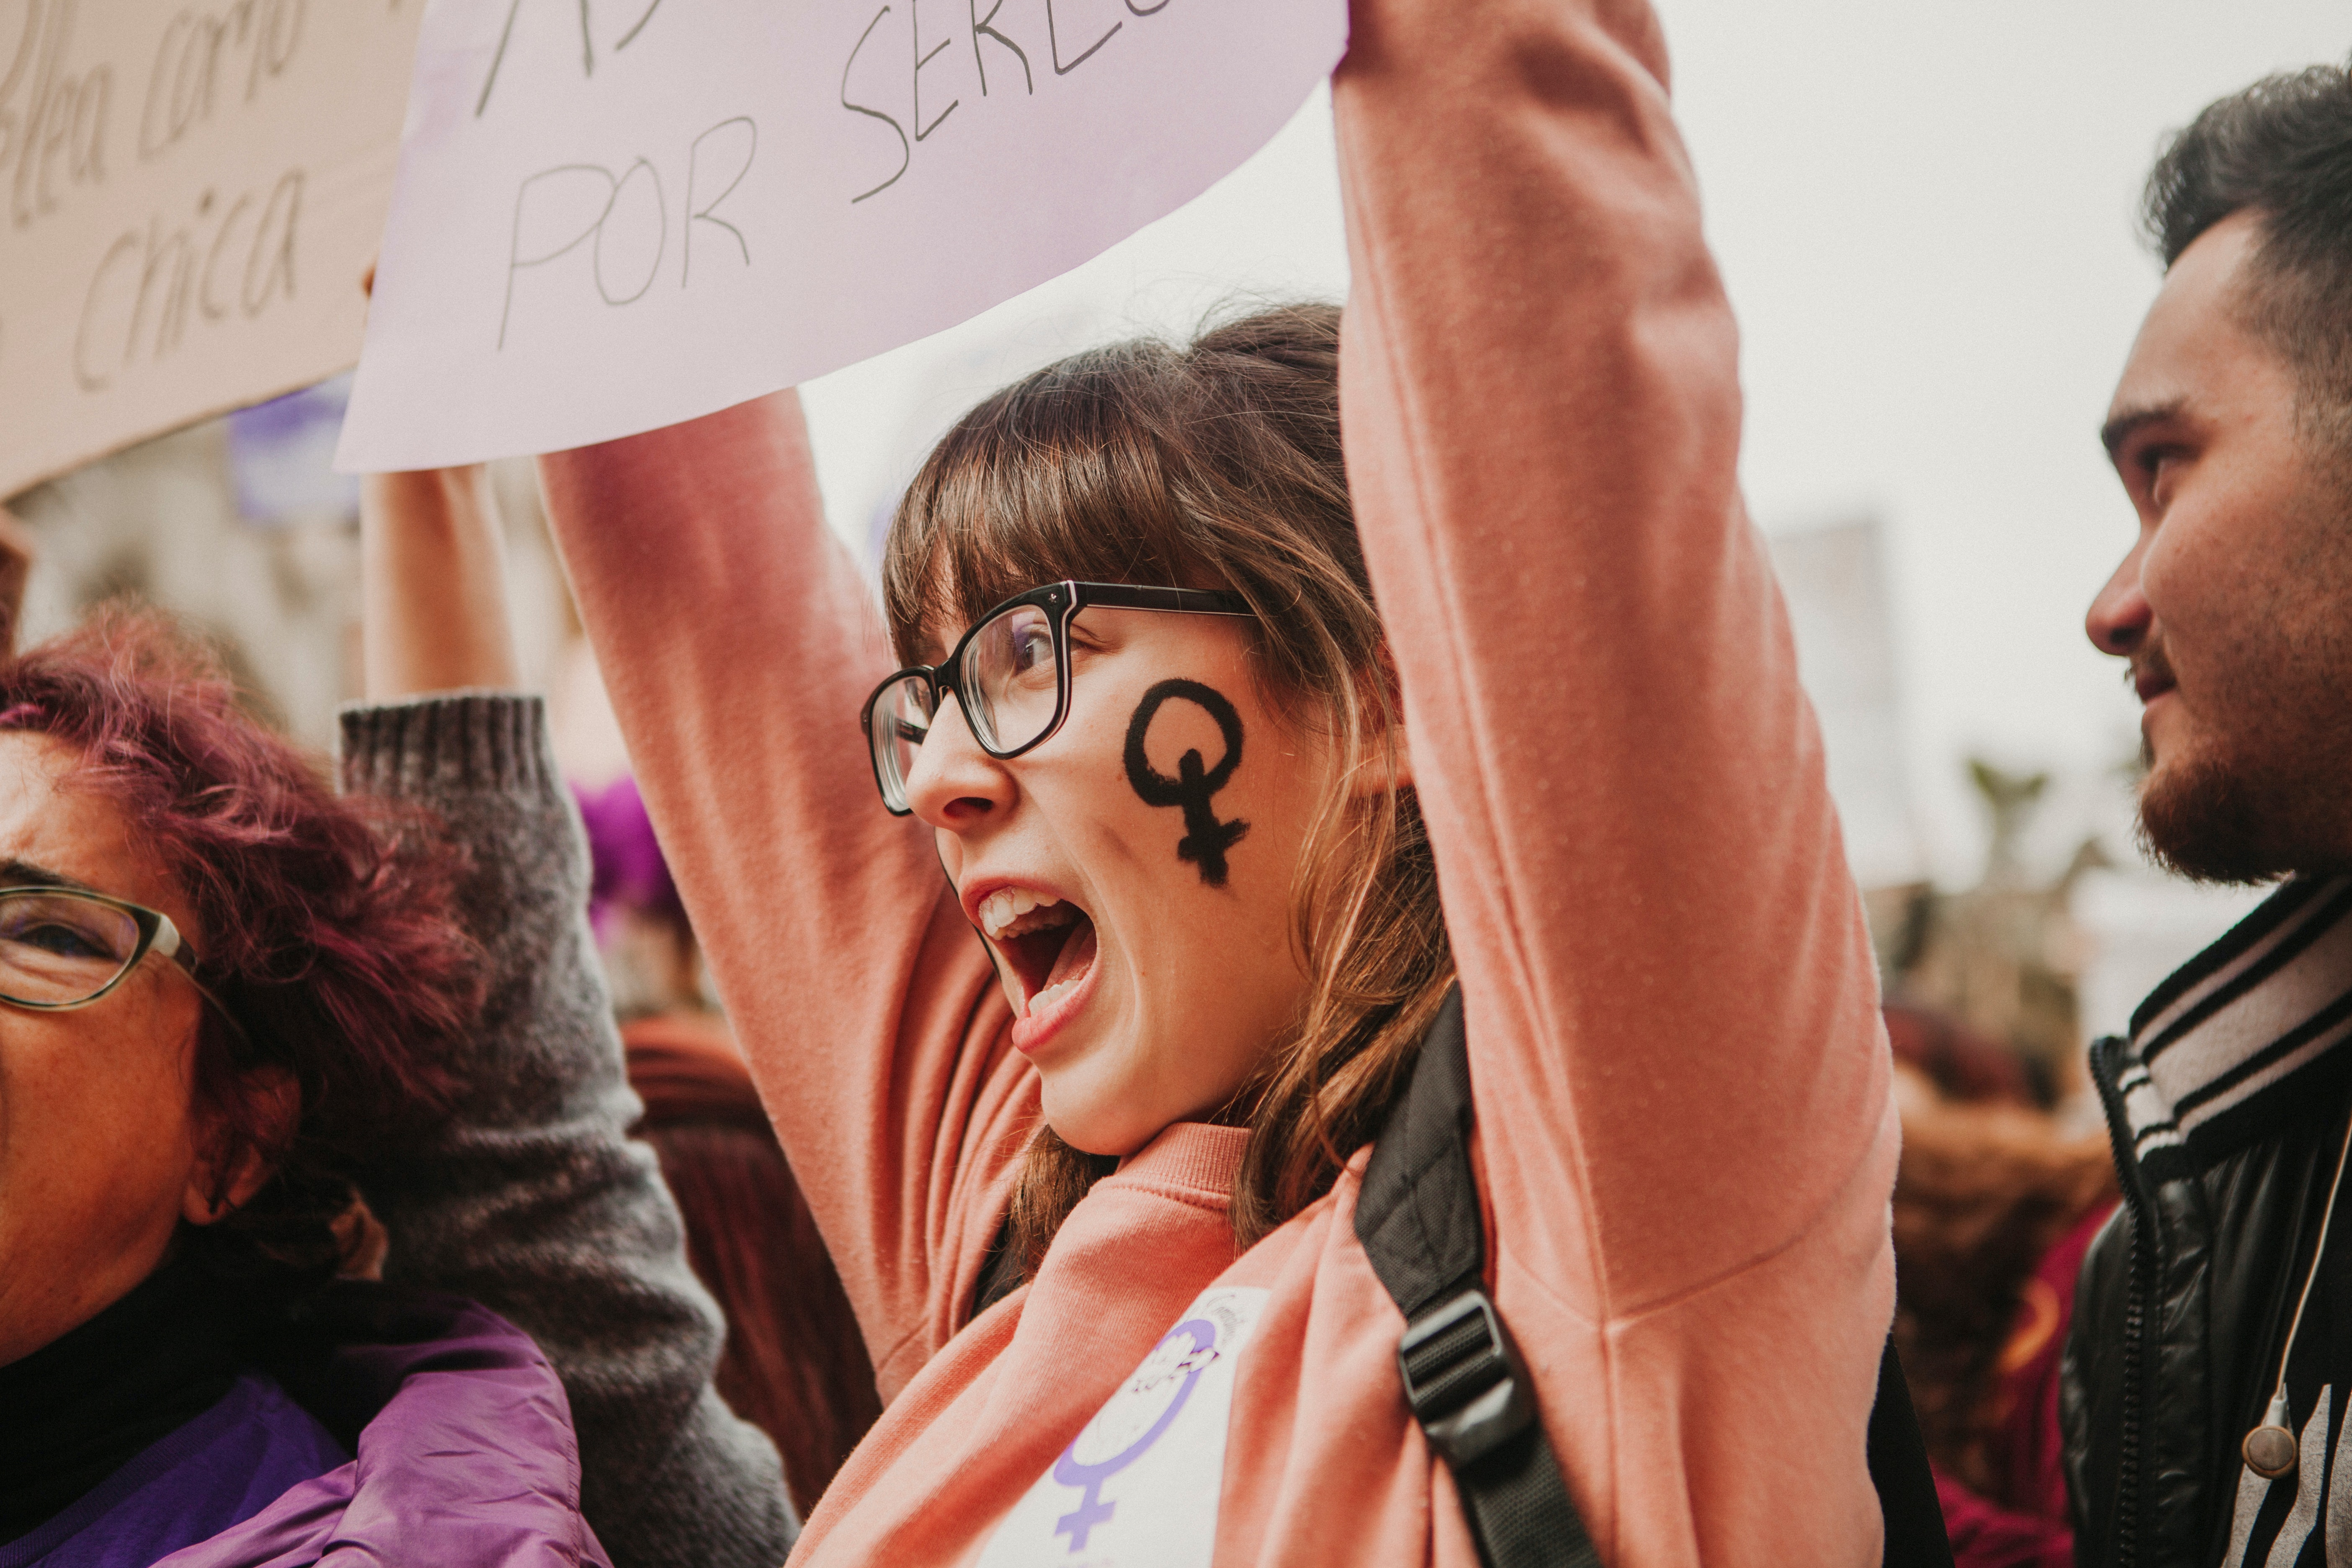 #MeToo Global Series News, Research and Analysis - The Conversation